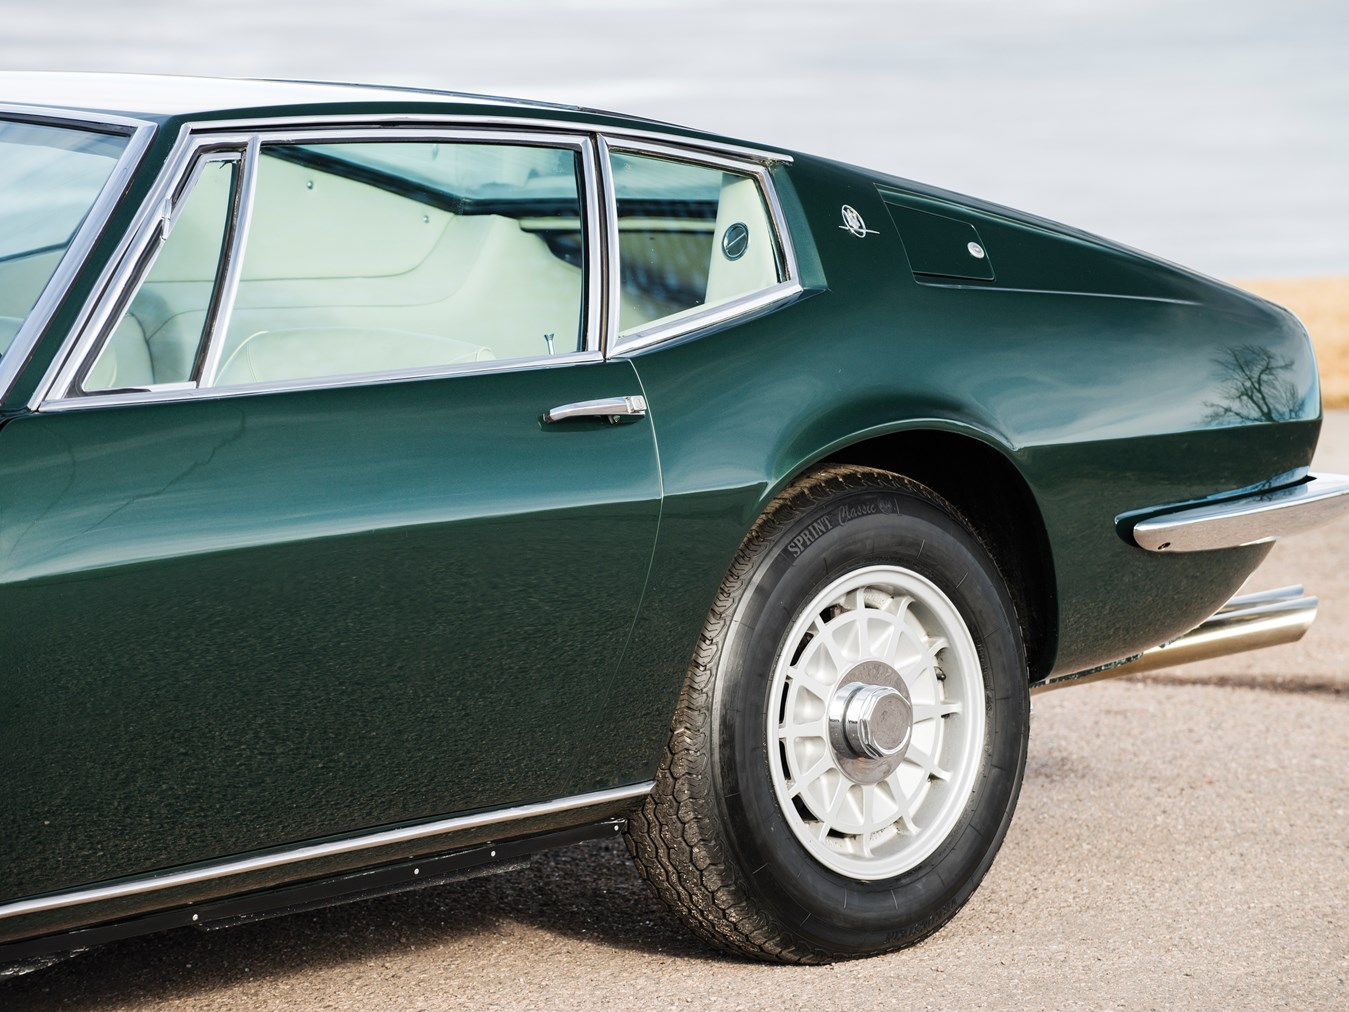 1969 Maserati Ghibli 4.7 Coupe by Ghia